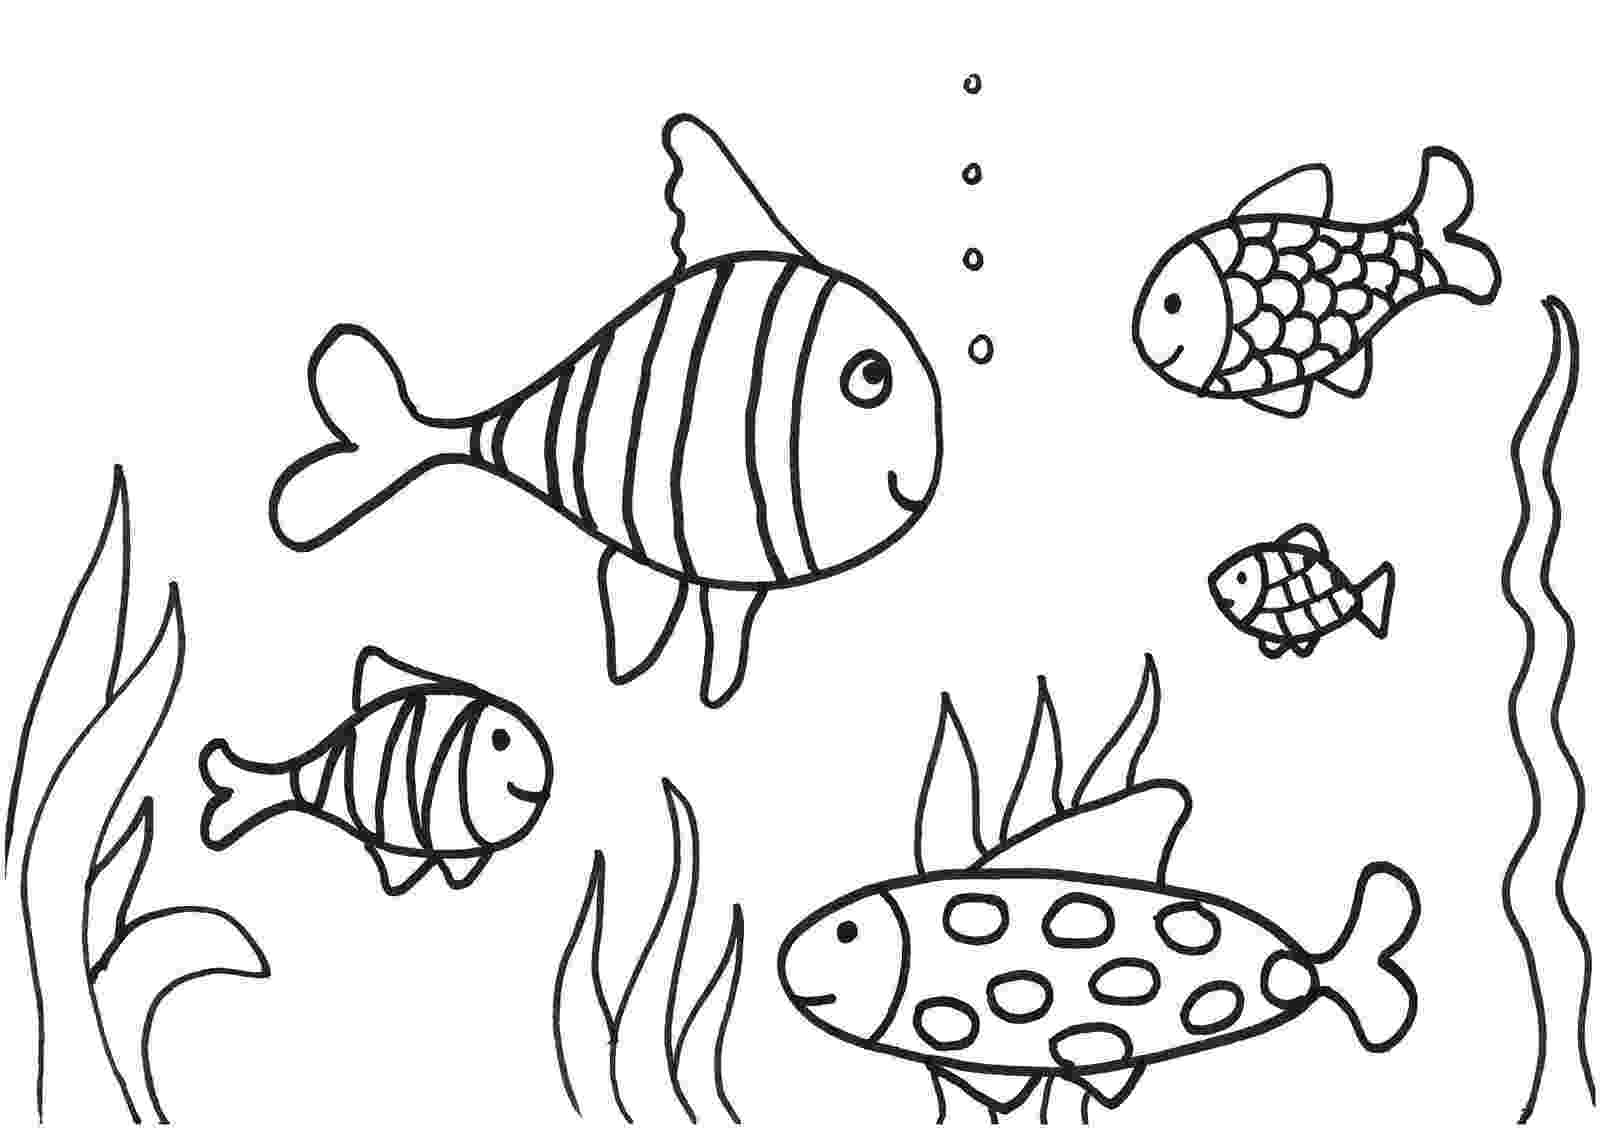 fish picture to color simple fish coloring pages download and print for free picture to color fish